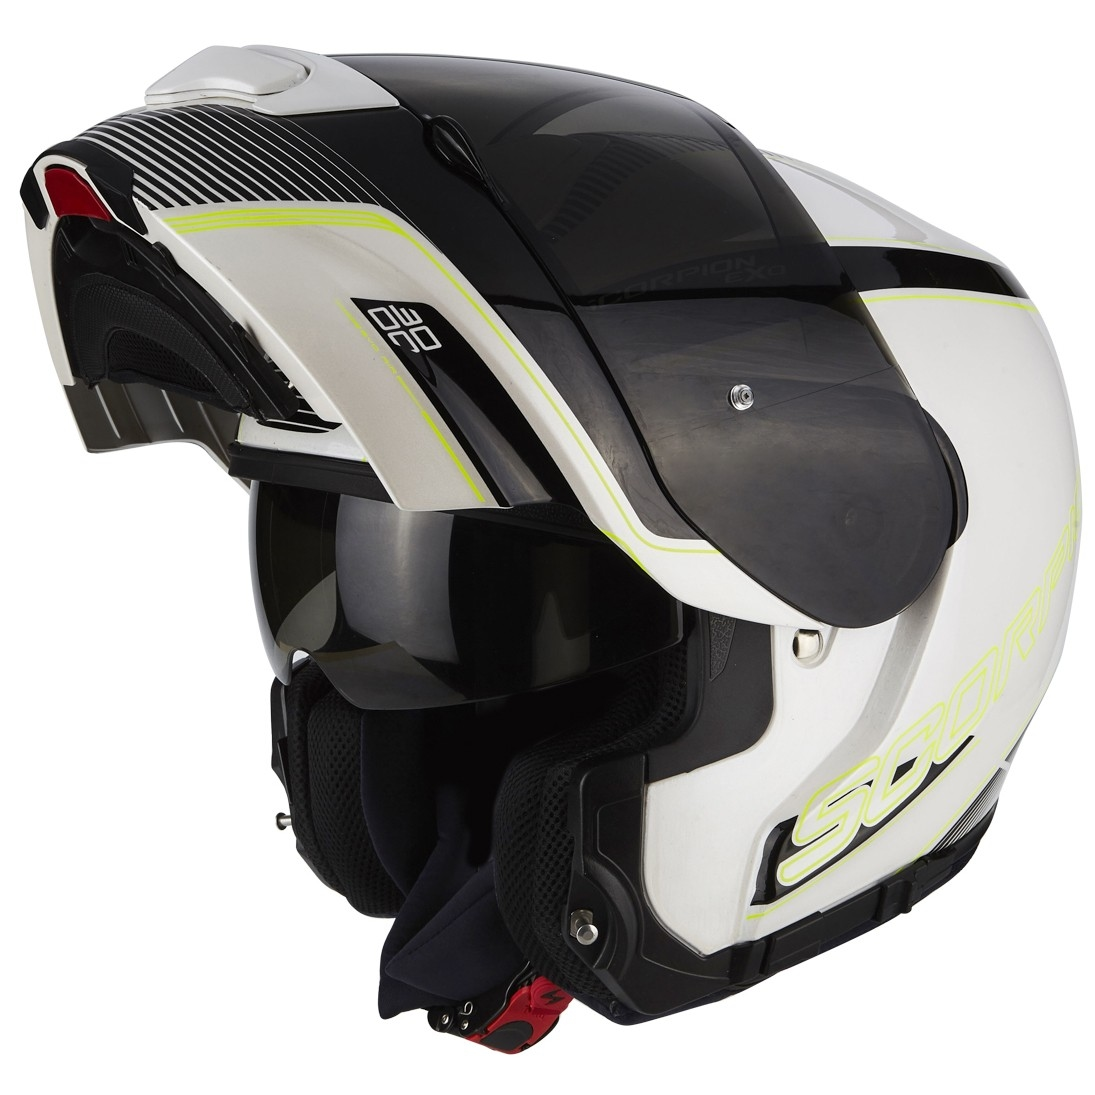 casco scorpion exo 3000 air stroll pearl white black neon yellow motocard. Black Bedroom Furniture Sets. Home Design Ideas